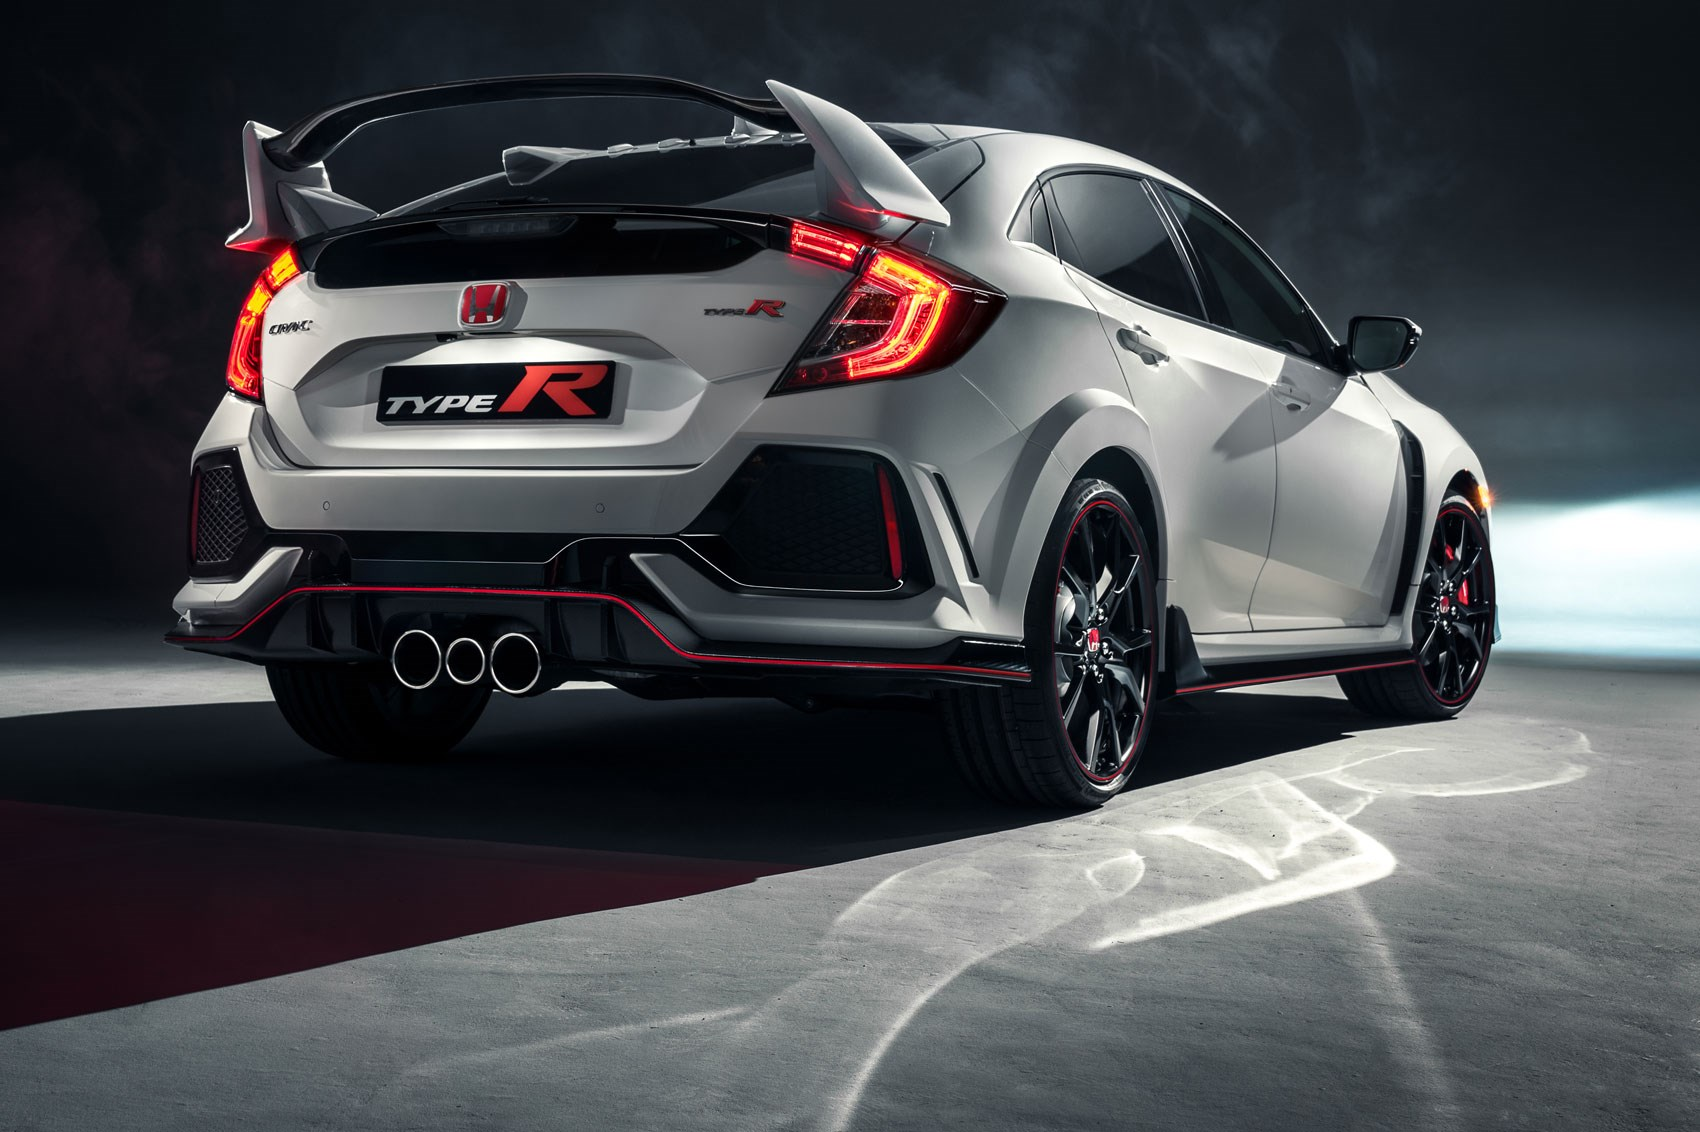 New honda civic type r revealed in pictures by car magazine for Buy honda civic type r